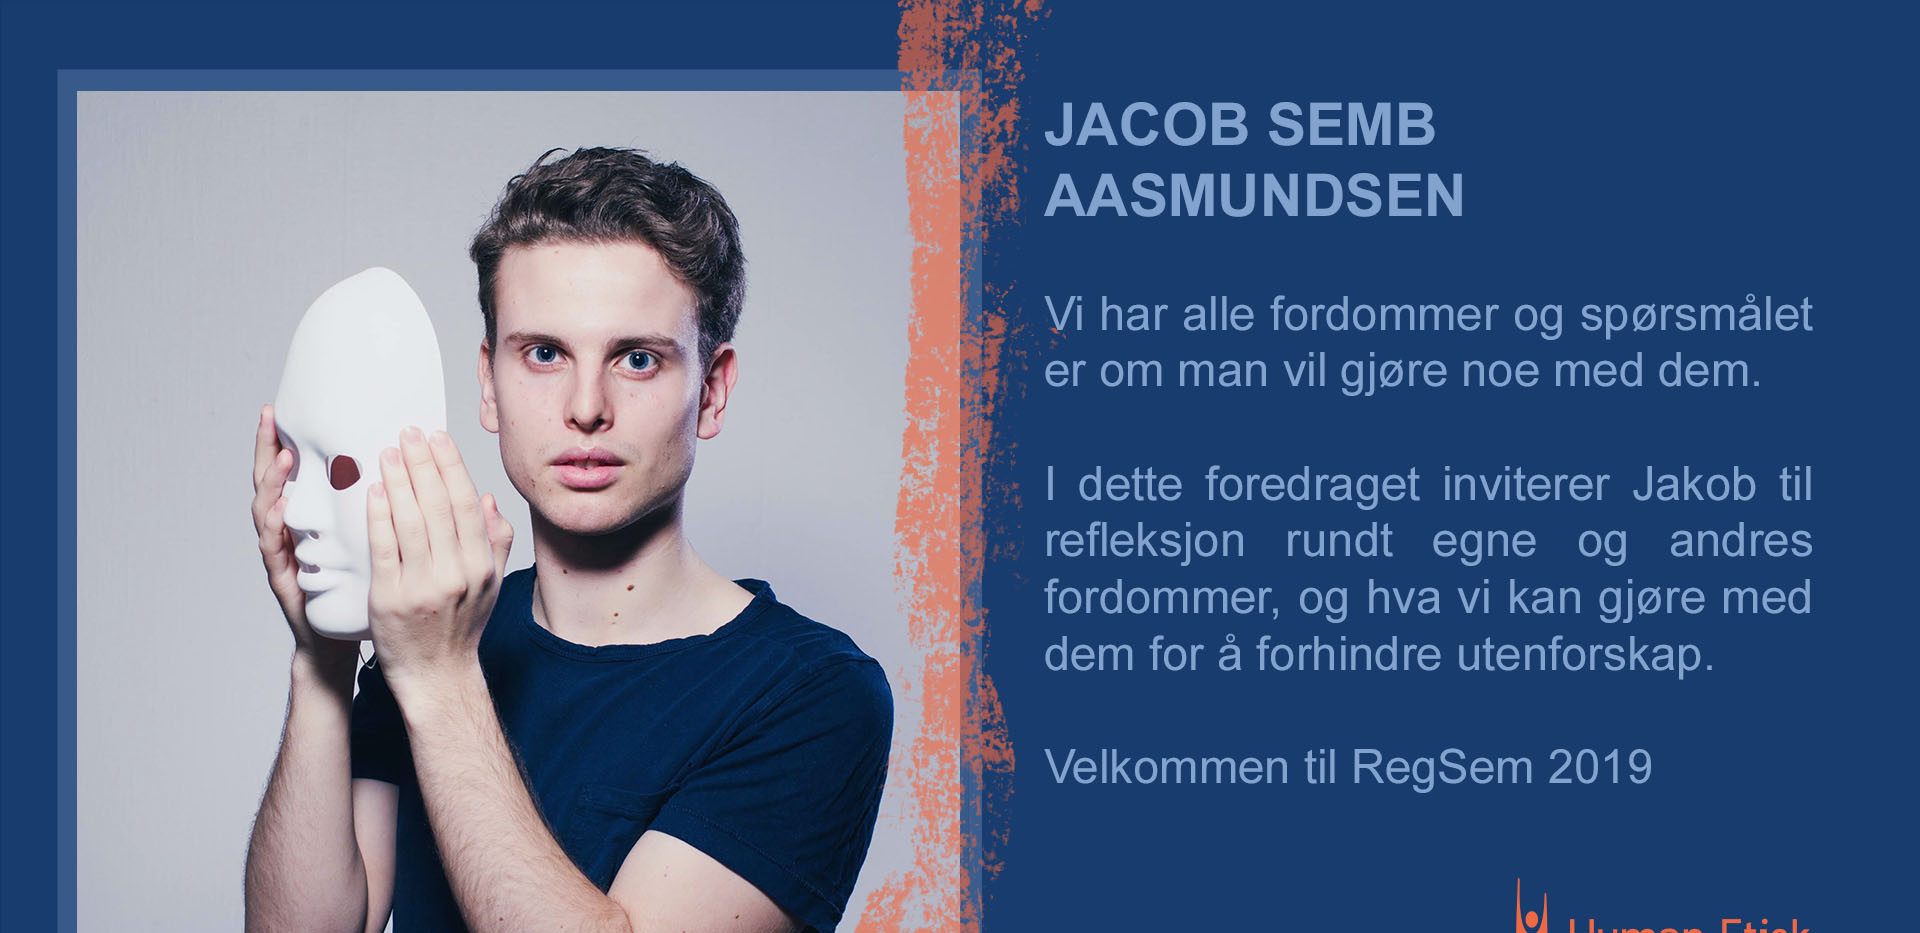 facebookbanner jacob.jpg